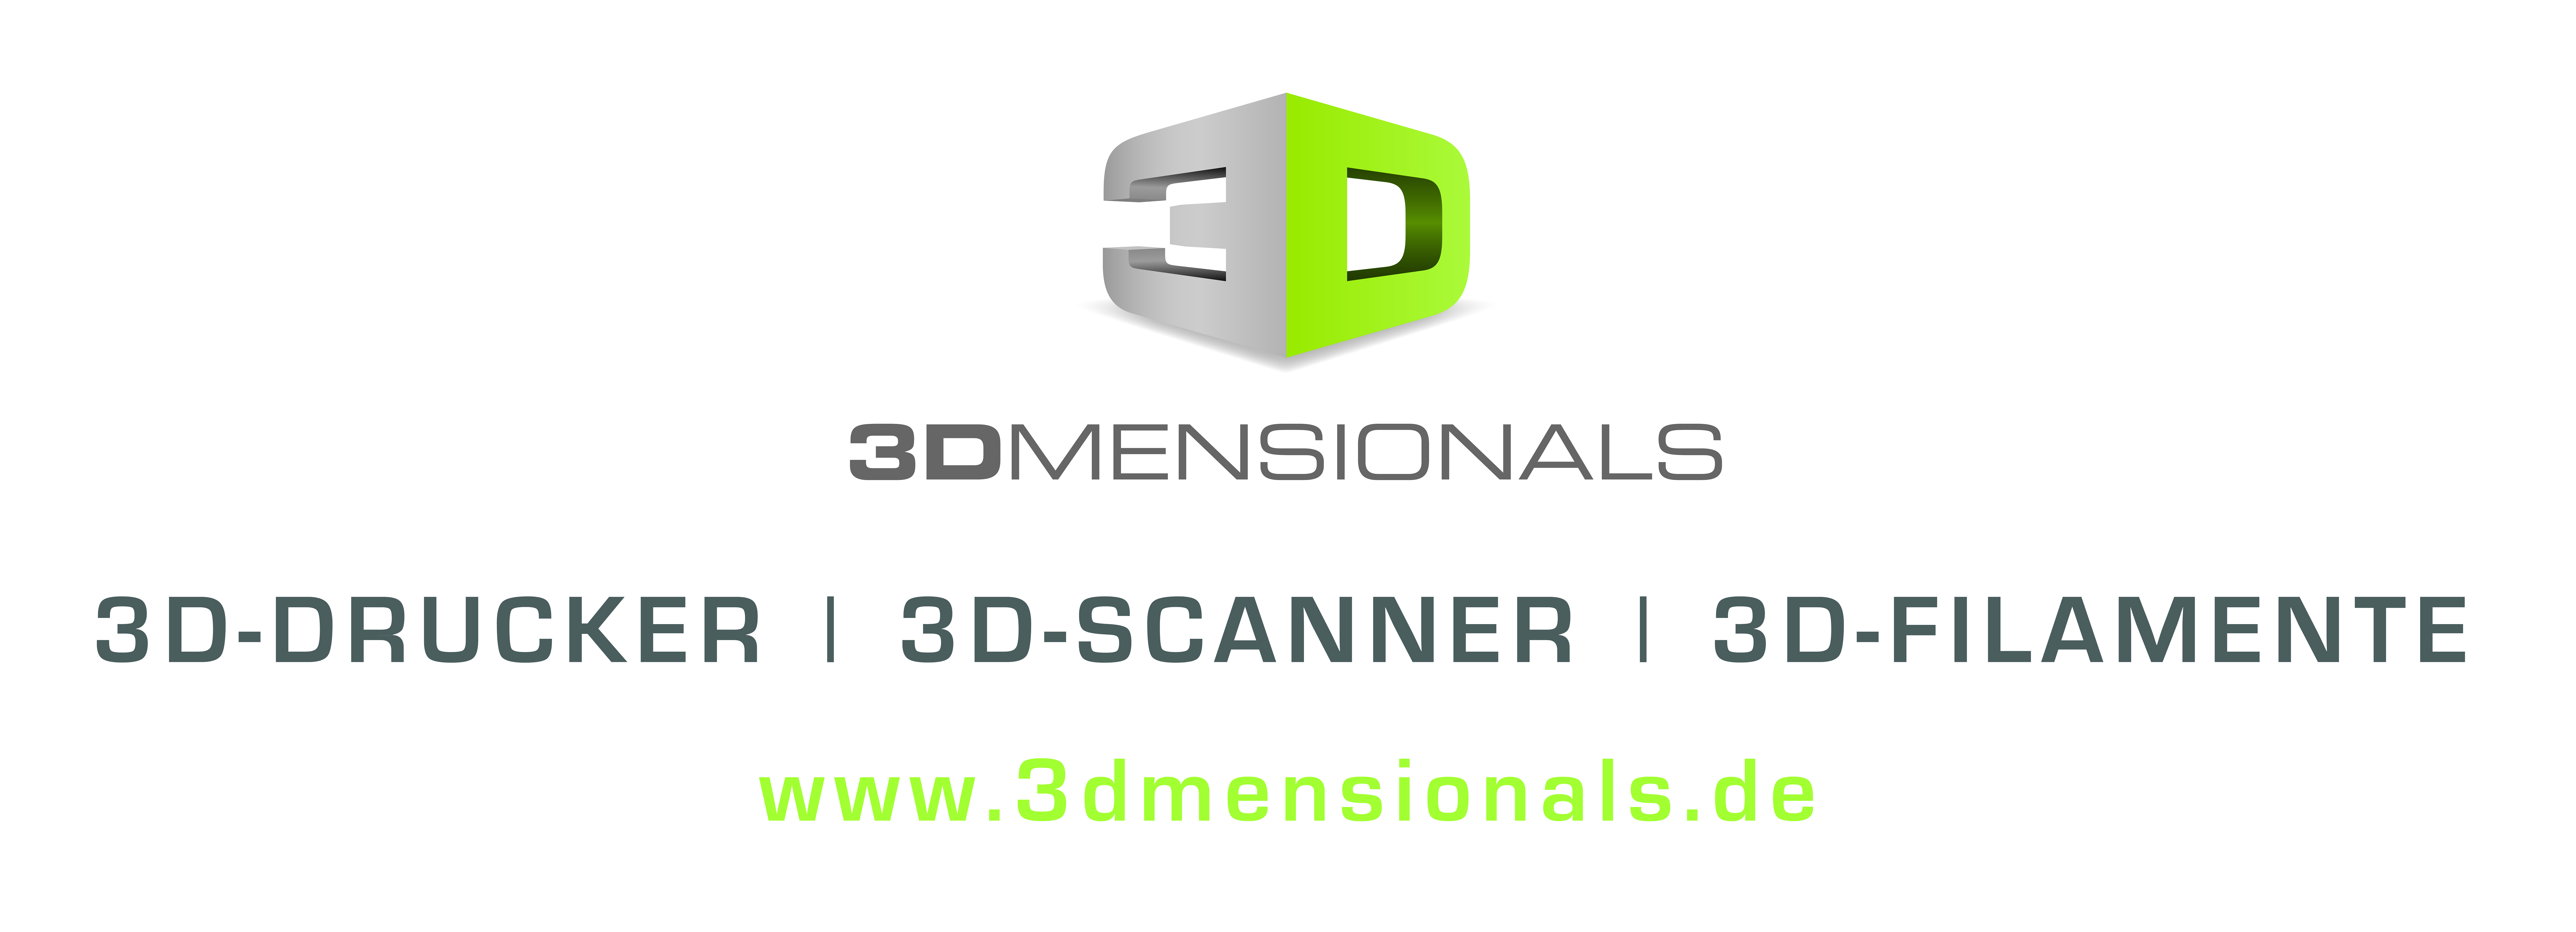 3Dmensionals Logo small